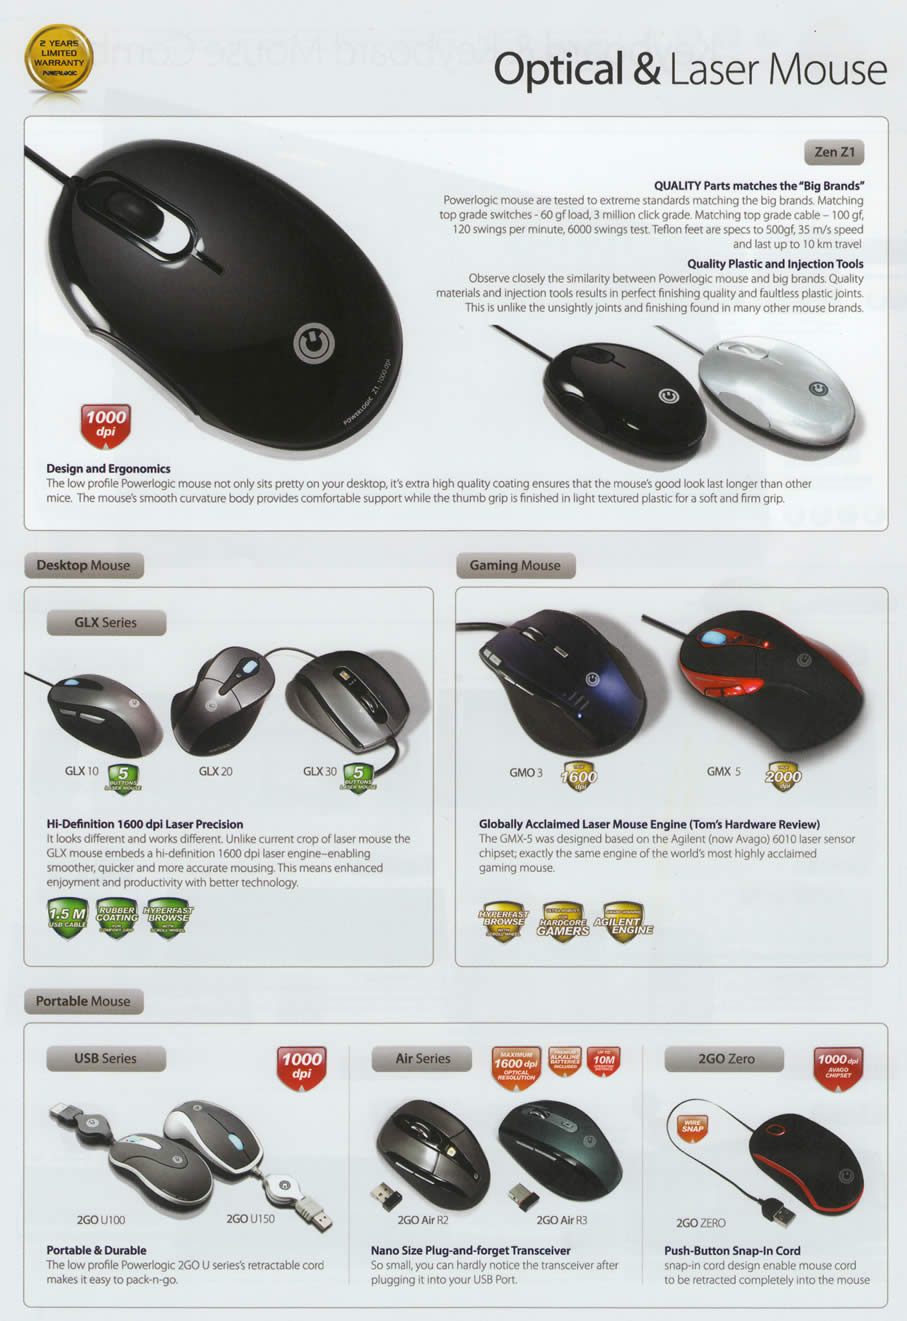 Comex 2009 price list image brochure of Powerlogic Mouse Optical Laser Zen Z1 GLX USB Air 2GO Zero